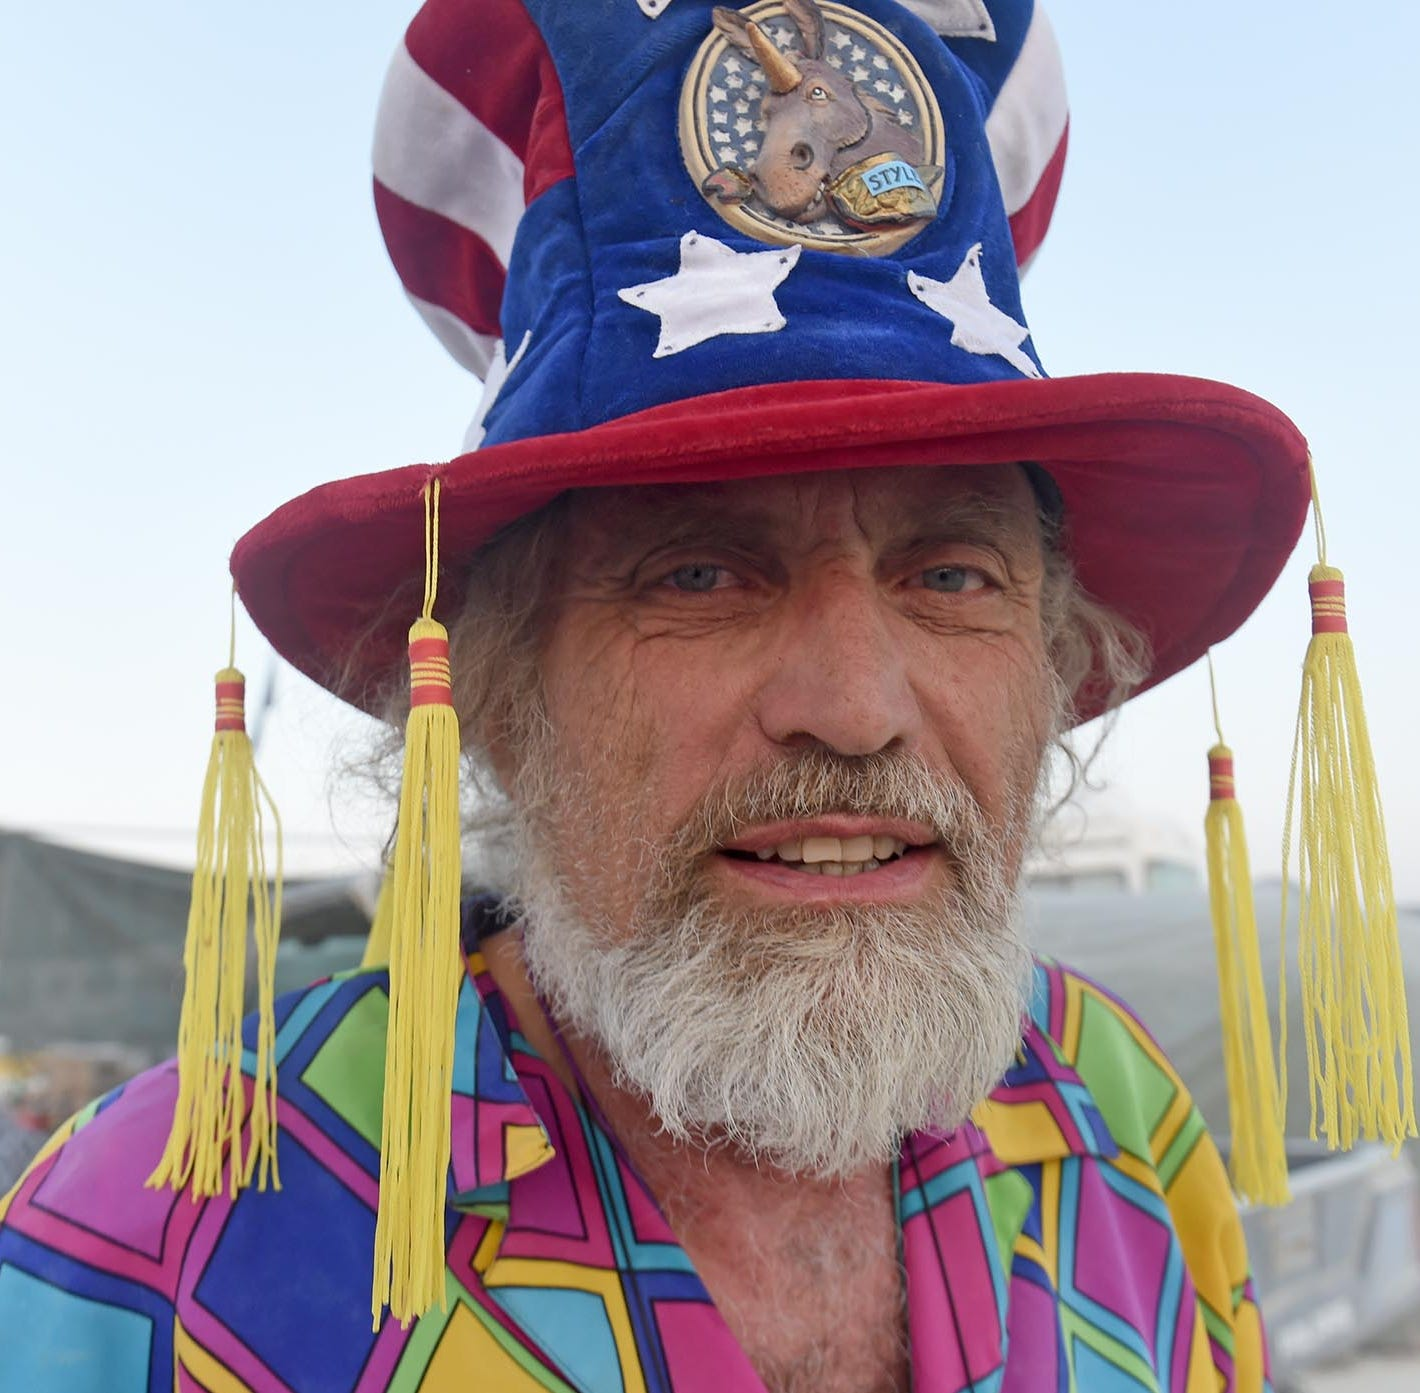 Legendary pranks in Burning Man history: Get some April Fools' Day inspiration here